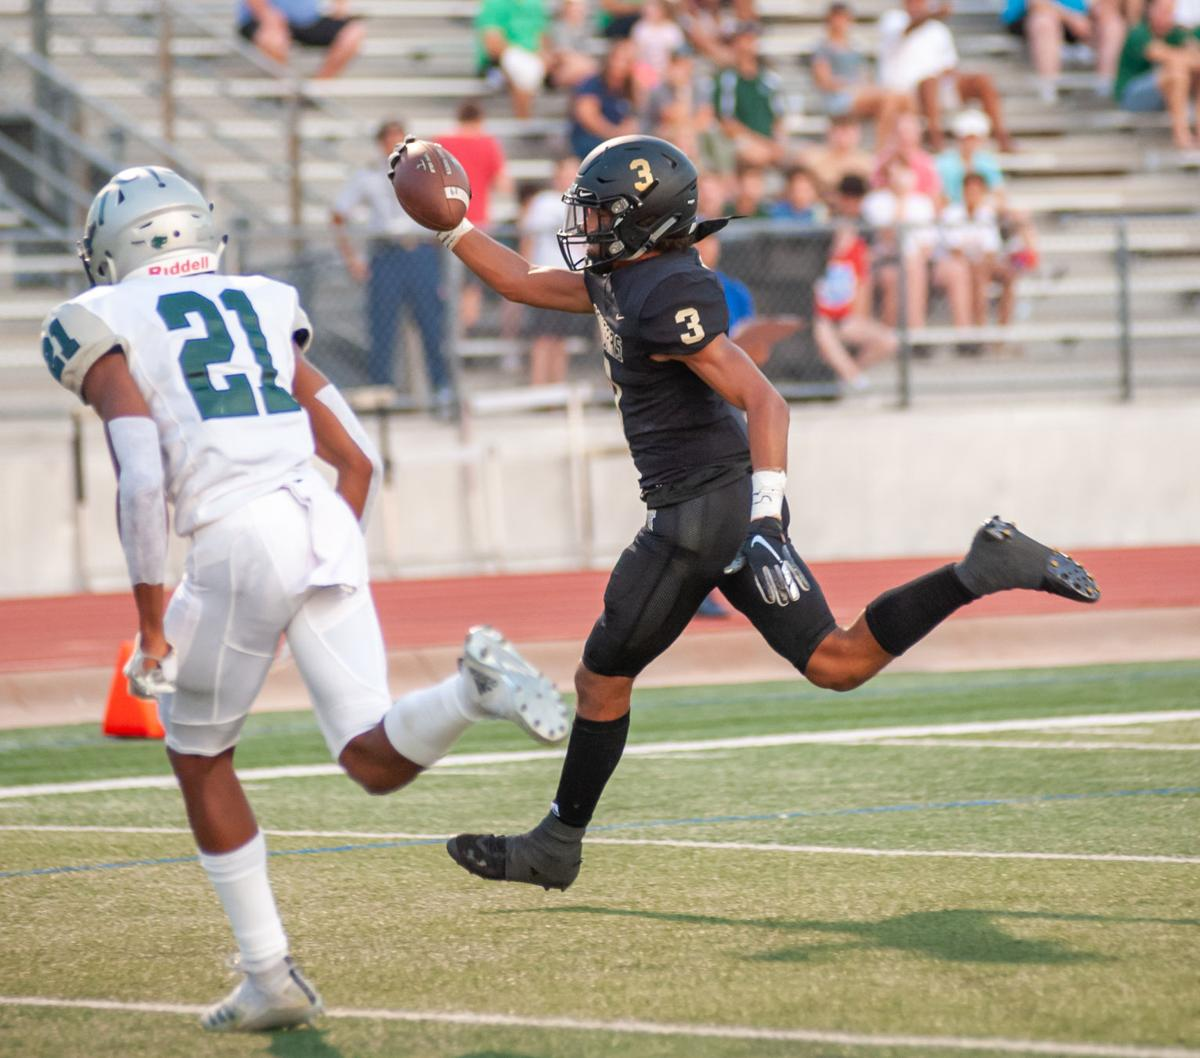 Lions lose lopsided affair to The Colony, 48-19 | Sports